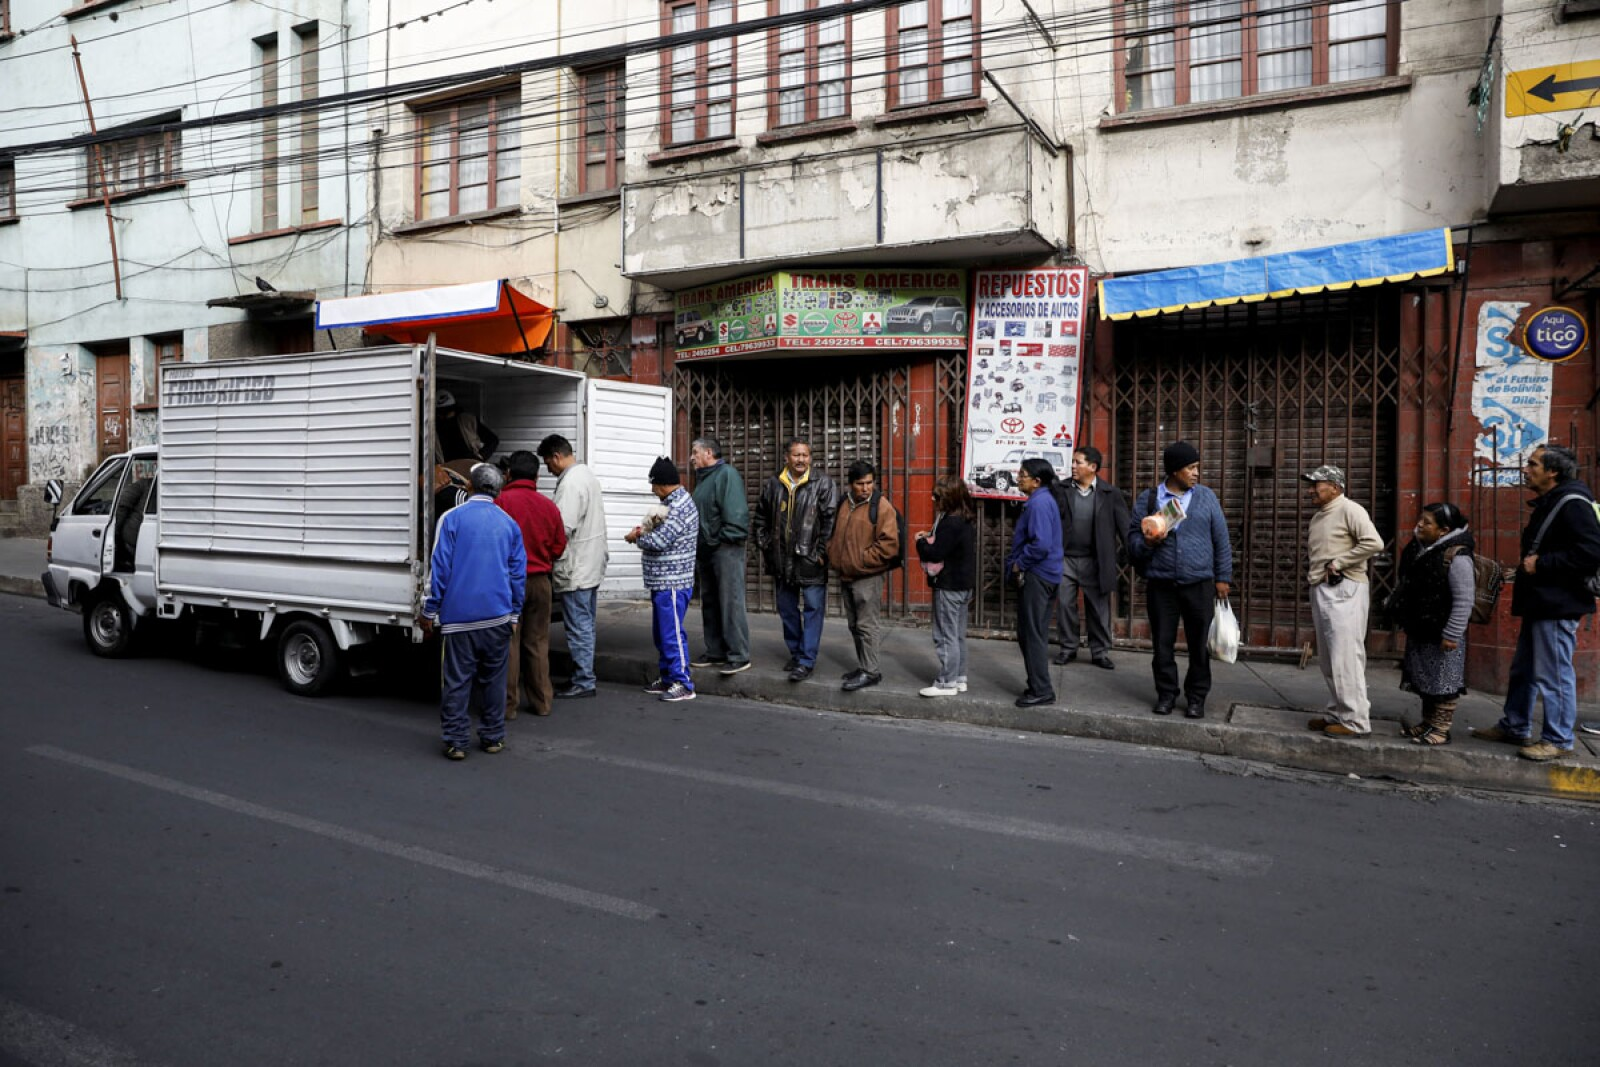 People stand in line to buy bread following Bolivia's former president Evo Morales' exit out of the country, in La Paz